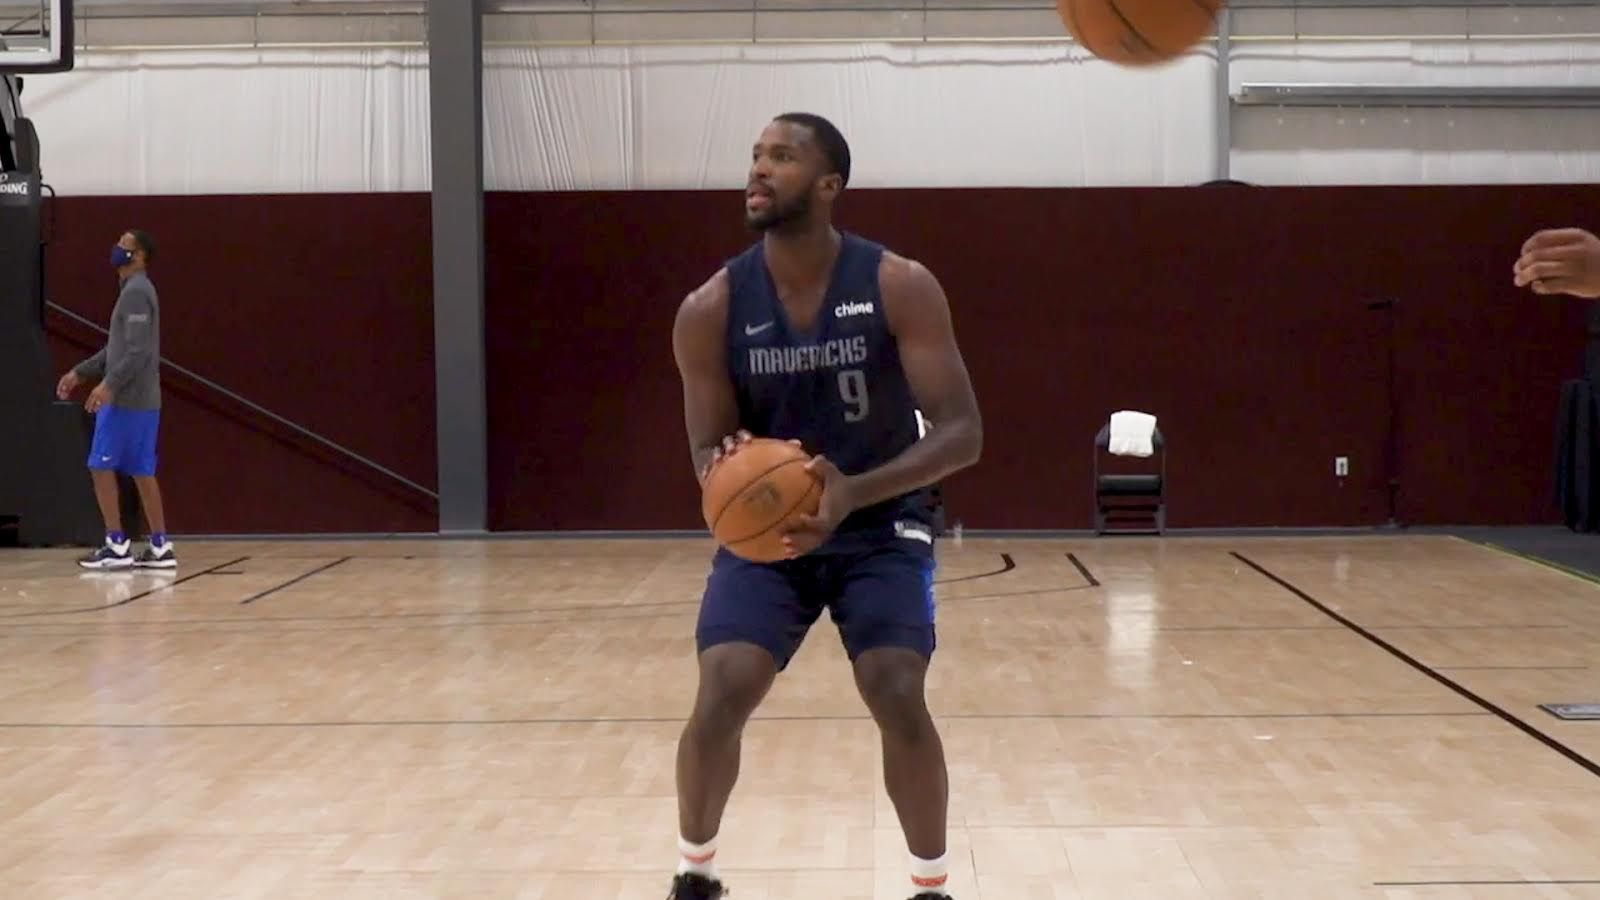 Dallas Mavericks forward Michael Kidd-Gilchrist practices with the team on Monday, July 20, 2020. Kidd-Gilchrist just joined the Mavs in the Florida bubble this past weekend.